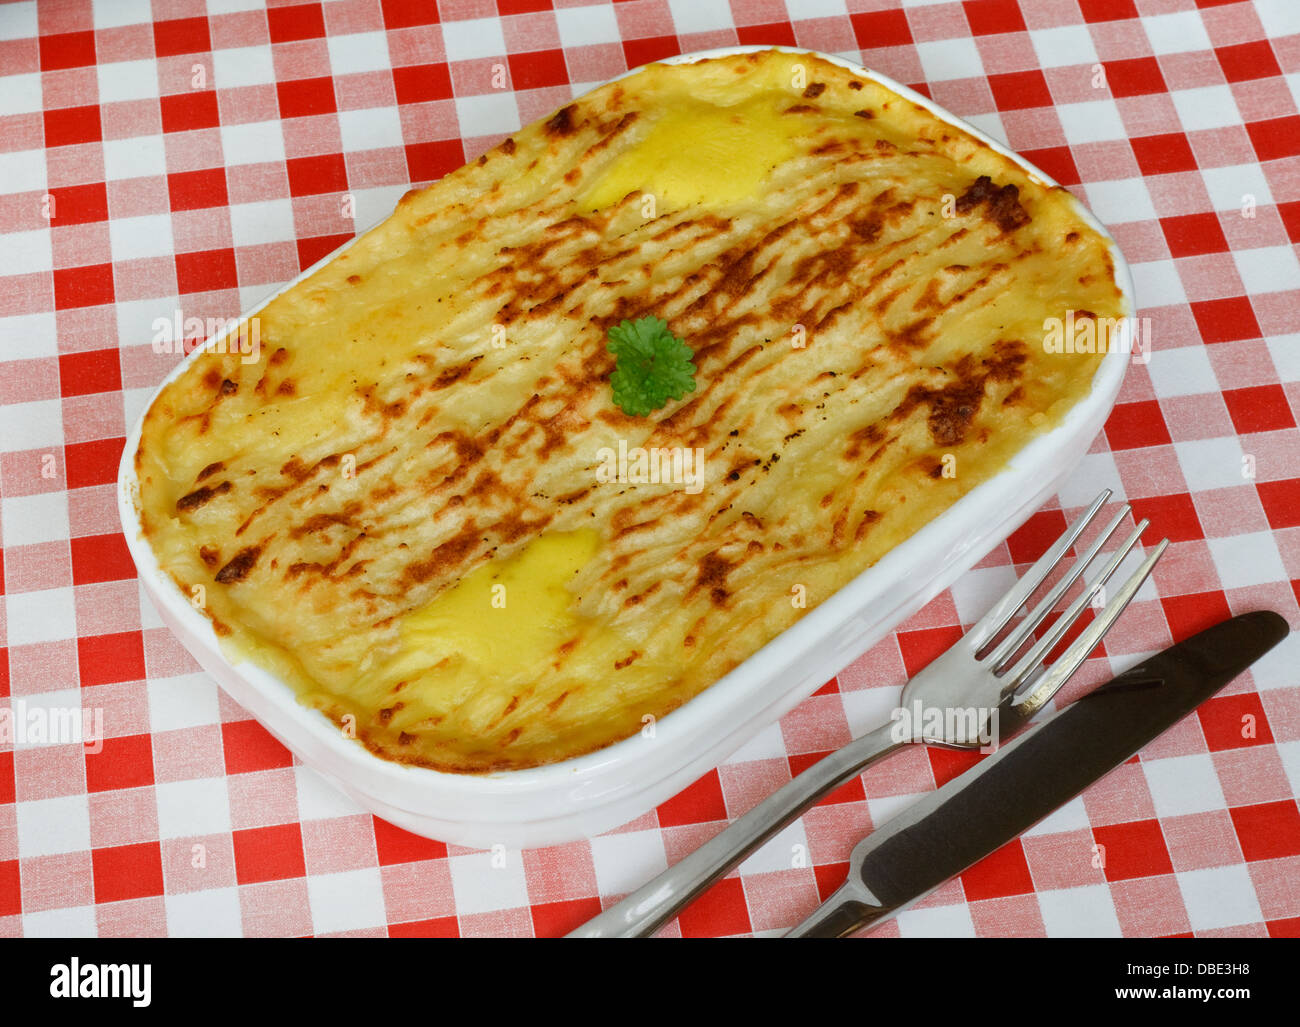 Traditional Homemade Fish Pie in a casserole dish with crispy mashed potato on the top on a red gingham tablecloth - Stock Image